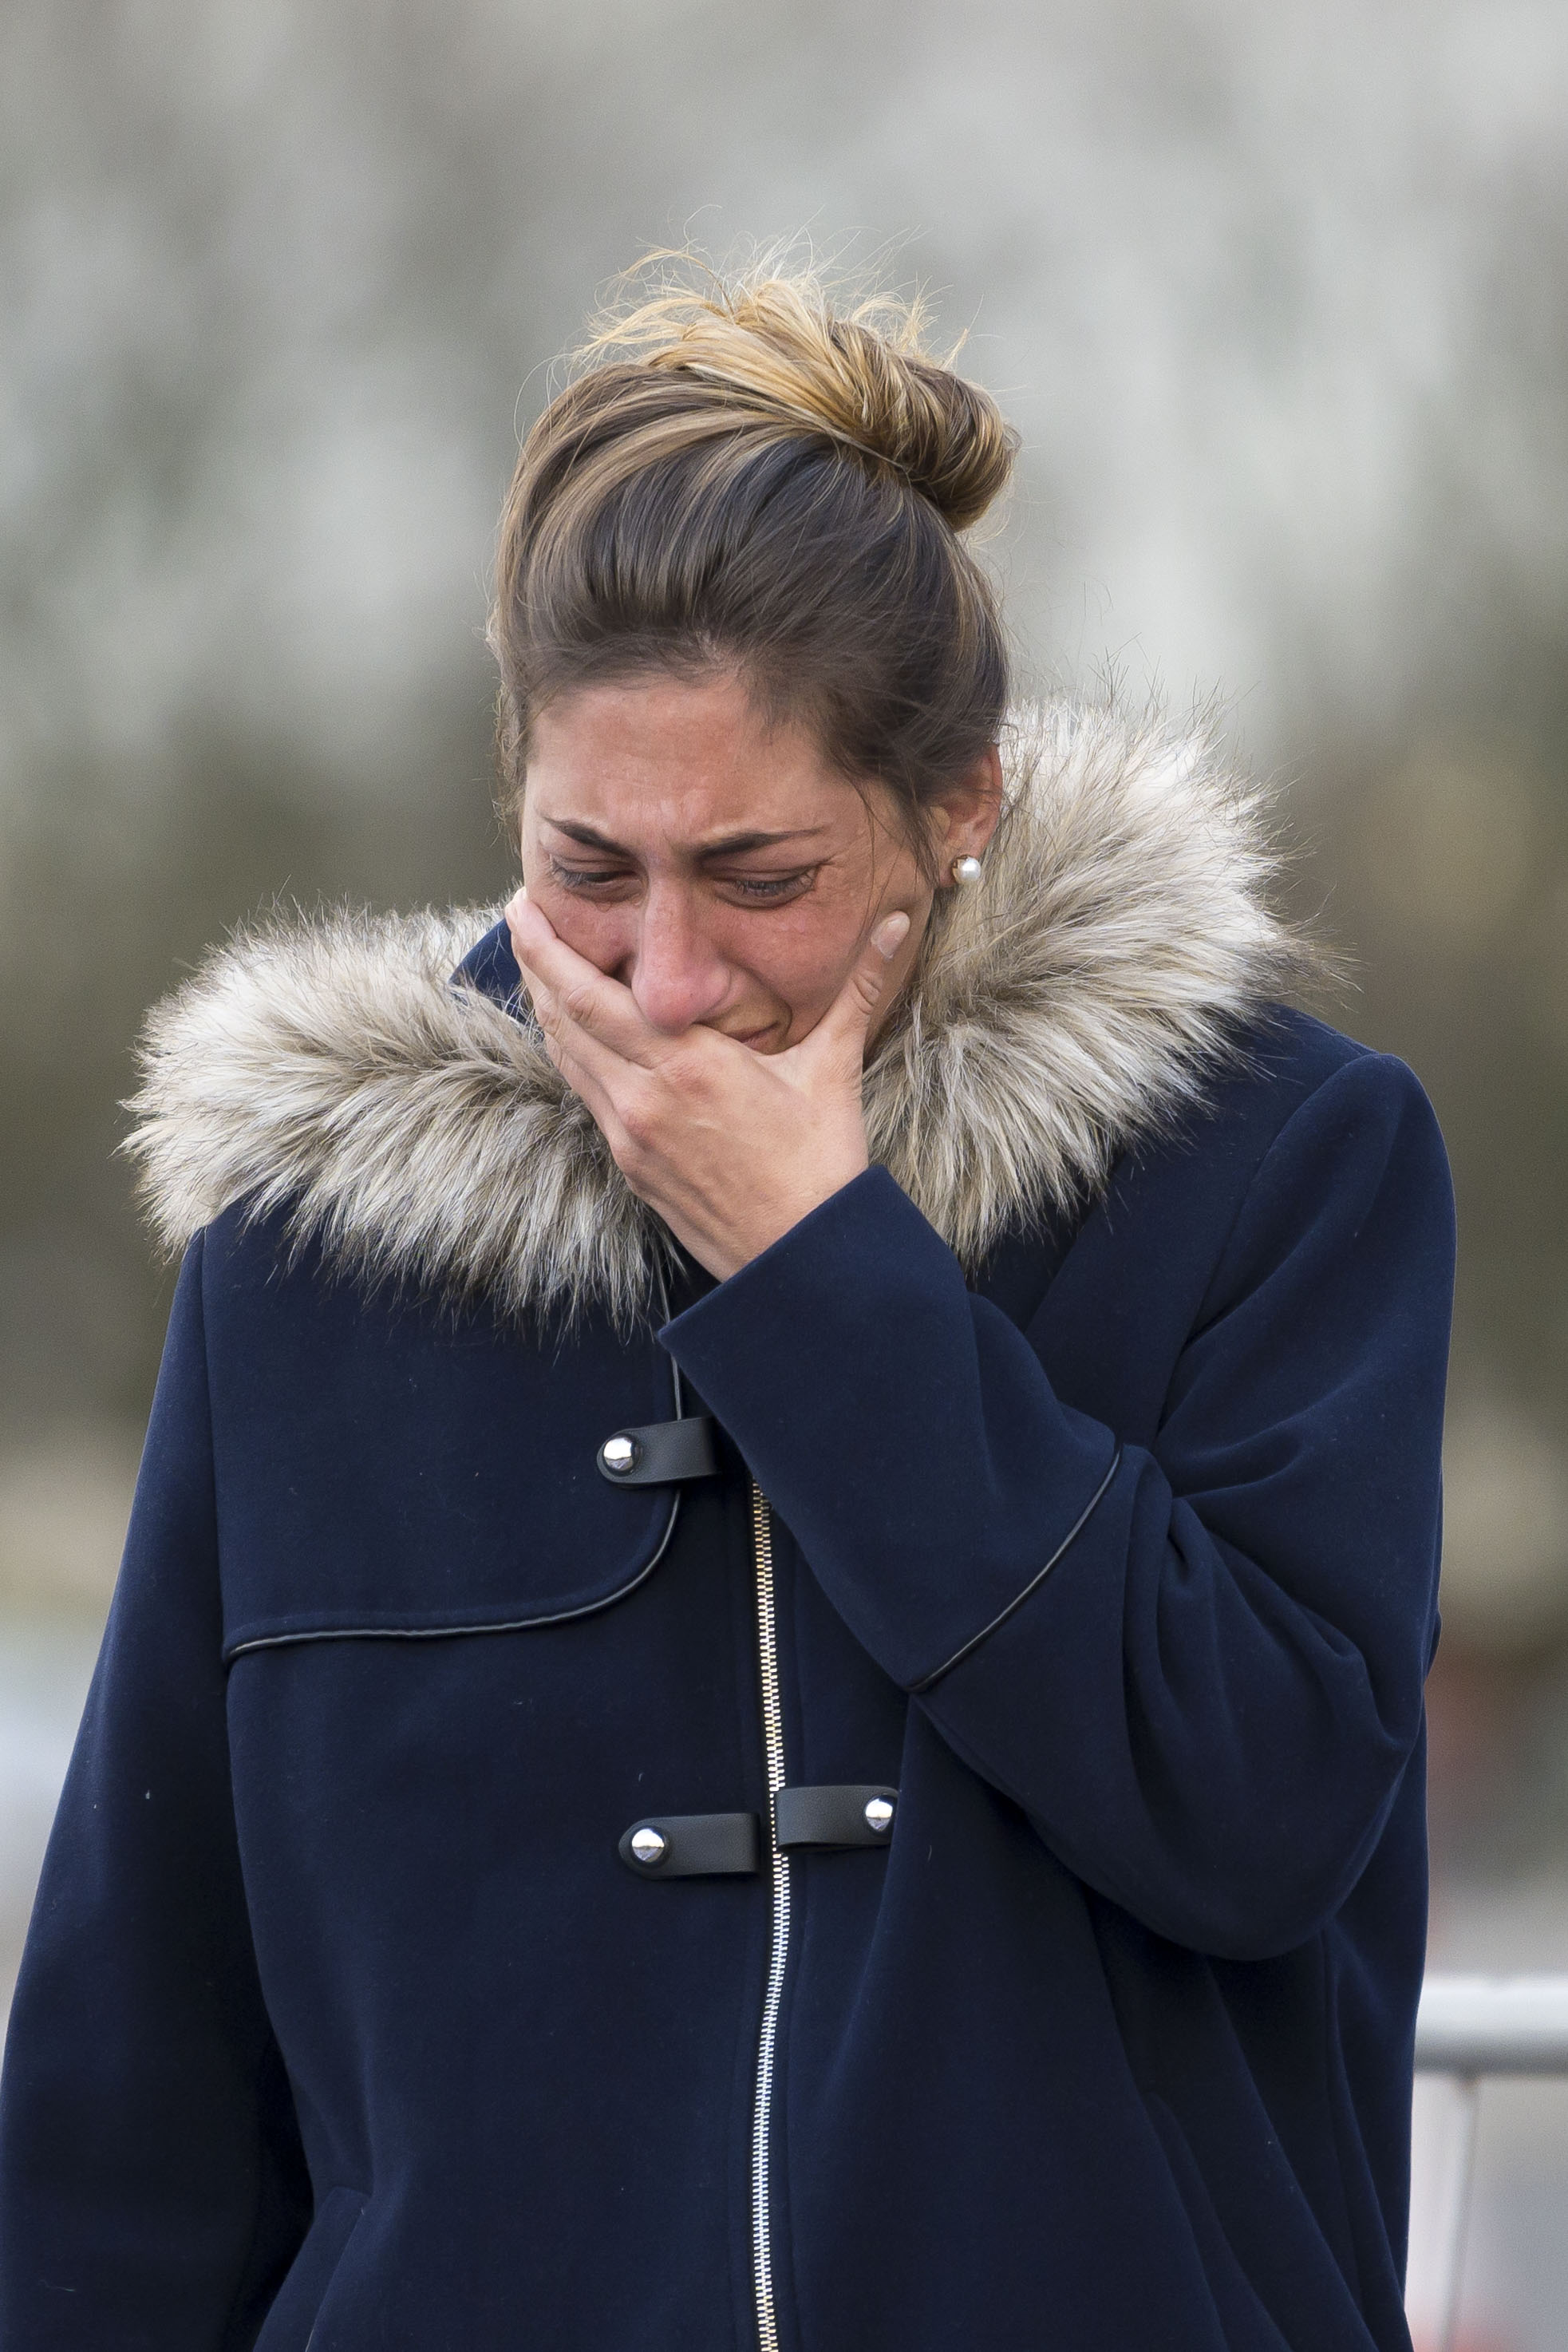 CARDIFF, WALES - JANUARY 25: Romina Sala, sister of new Cardiff City F.C signing Emiliano Sala, visits tributes at the Cardiff City Stadium on January 25, 2019 in Cardiff, Wales. Emiliano Sala is one of two people who boarded a Piper Malibu private plane on Monday night, taking the footballer from his previous club Nantes in France, to Cardiff City where he was due to begin training with his new team. Sala, originally from Argentina, had sent whatsapp messages to friends before the plane lost contact off Alderney in the Channel Islands. Rescuers have announced they are no longer actively searching for the plane. (Photo by Matthew Horwood/Getty Images)